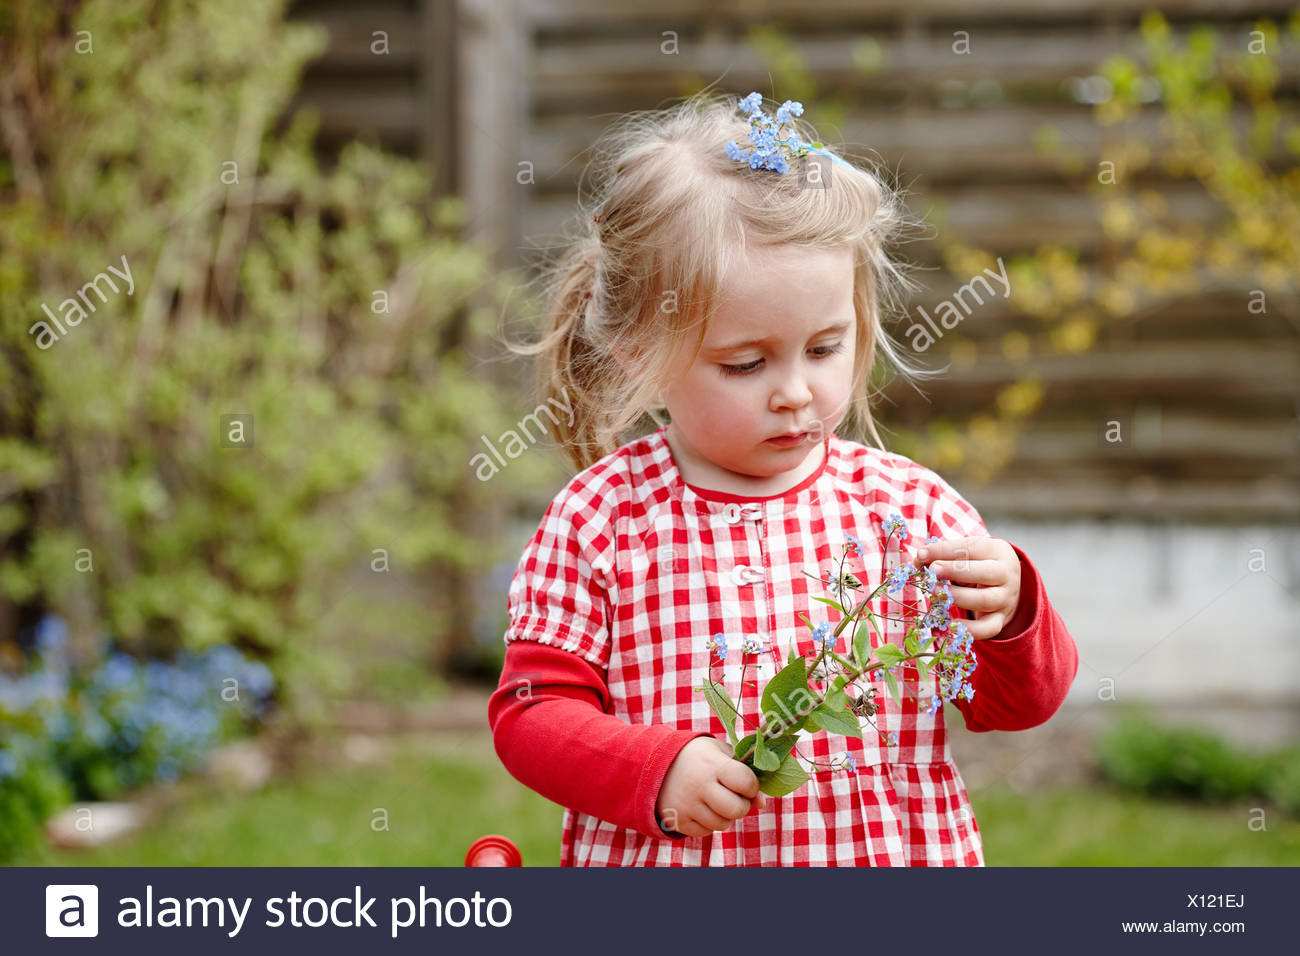 Young girl wearing gingham dress holding flowers Stock Photo